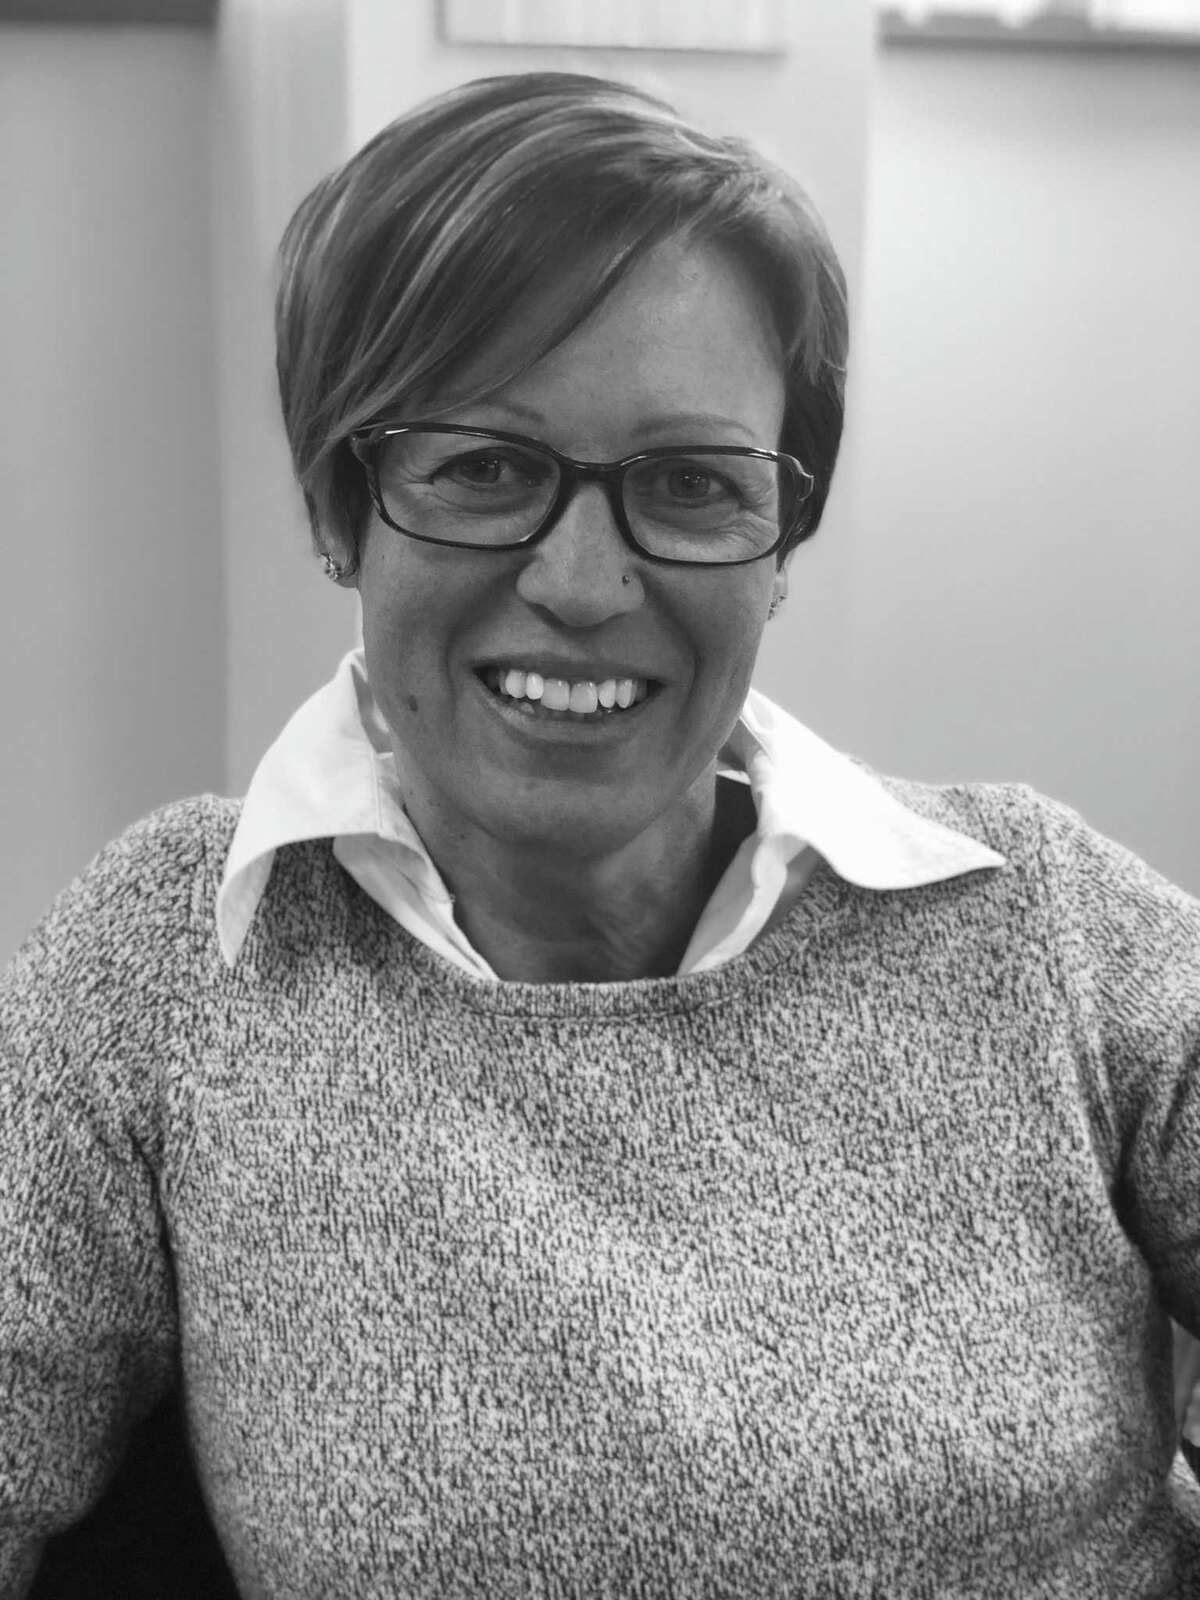 NAFI CT Executive Director Lynn Bishop was appointed President of the Children's League of Connecticut (CLOC) in September 2020.